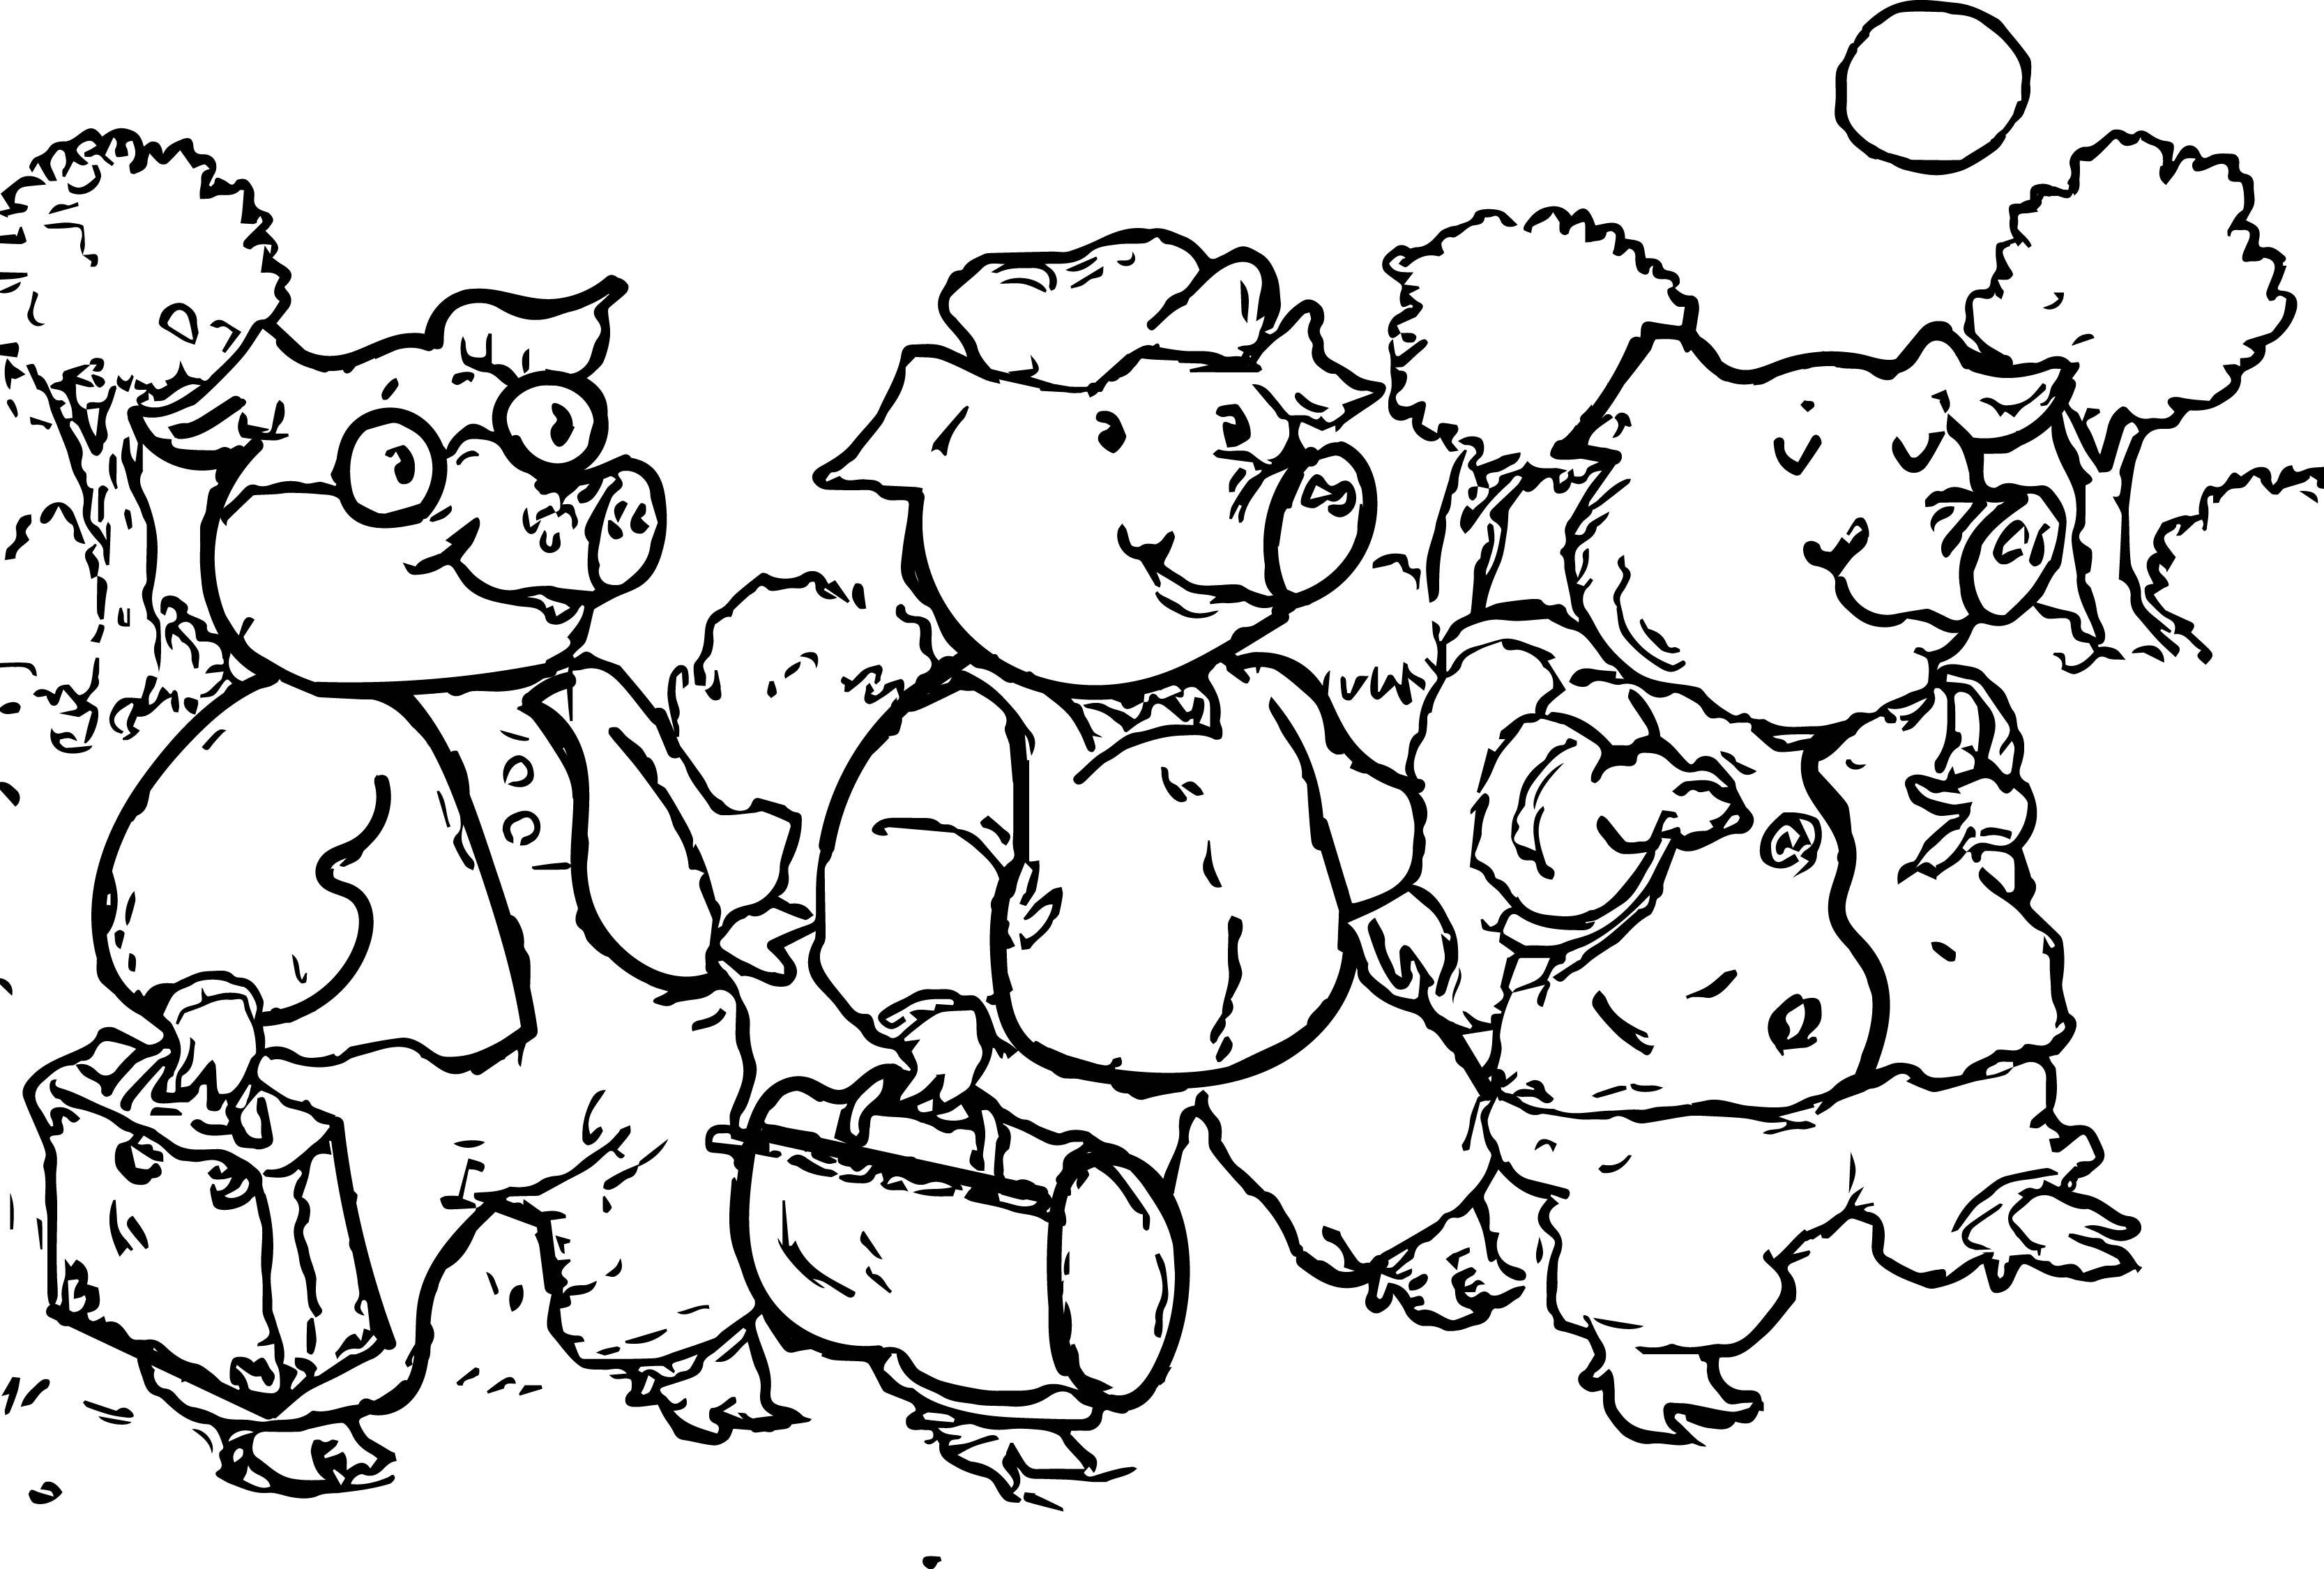 3 little pigs walking coloring page wecoloringpage